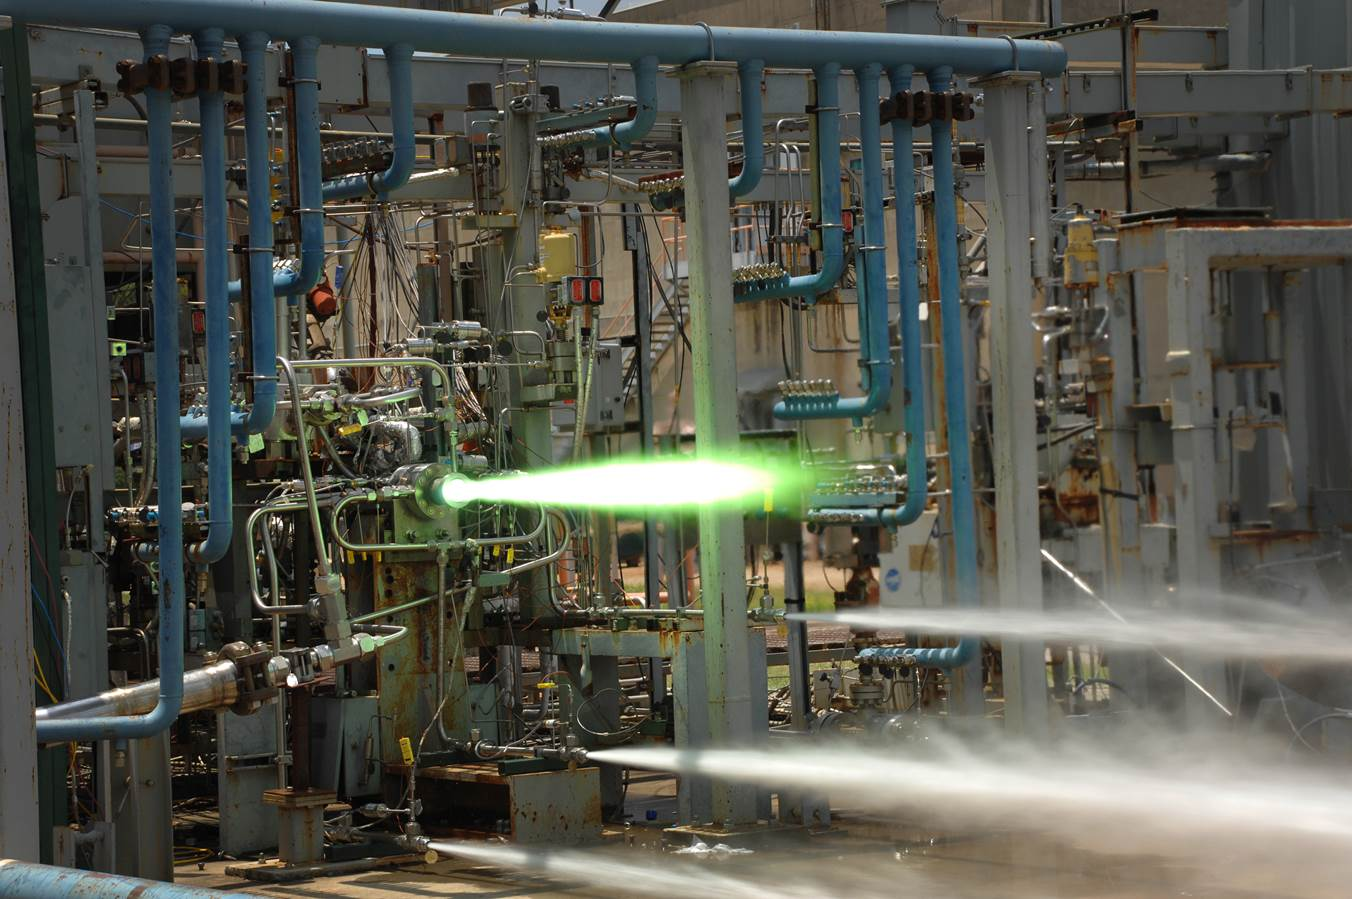 05-test-moteur-fusee-nasa-image-of-sls-marshall-space-flight-center-fuel-injector-3d-printed-additivel